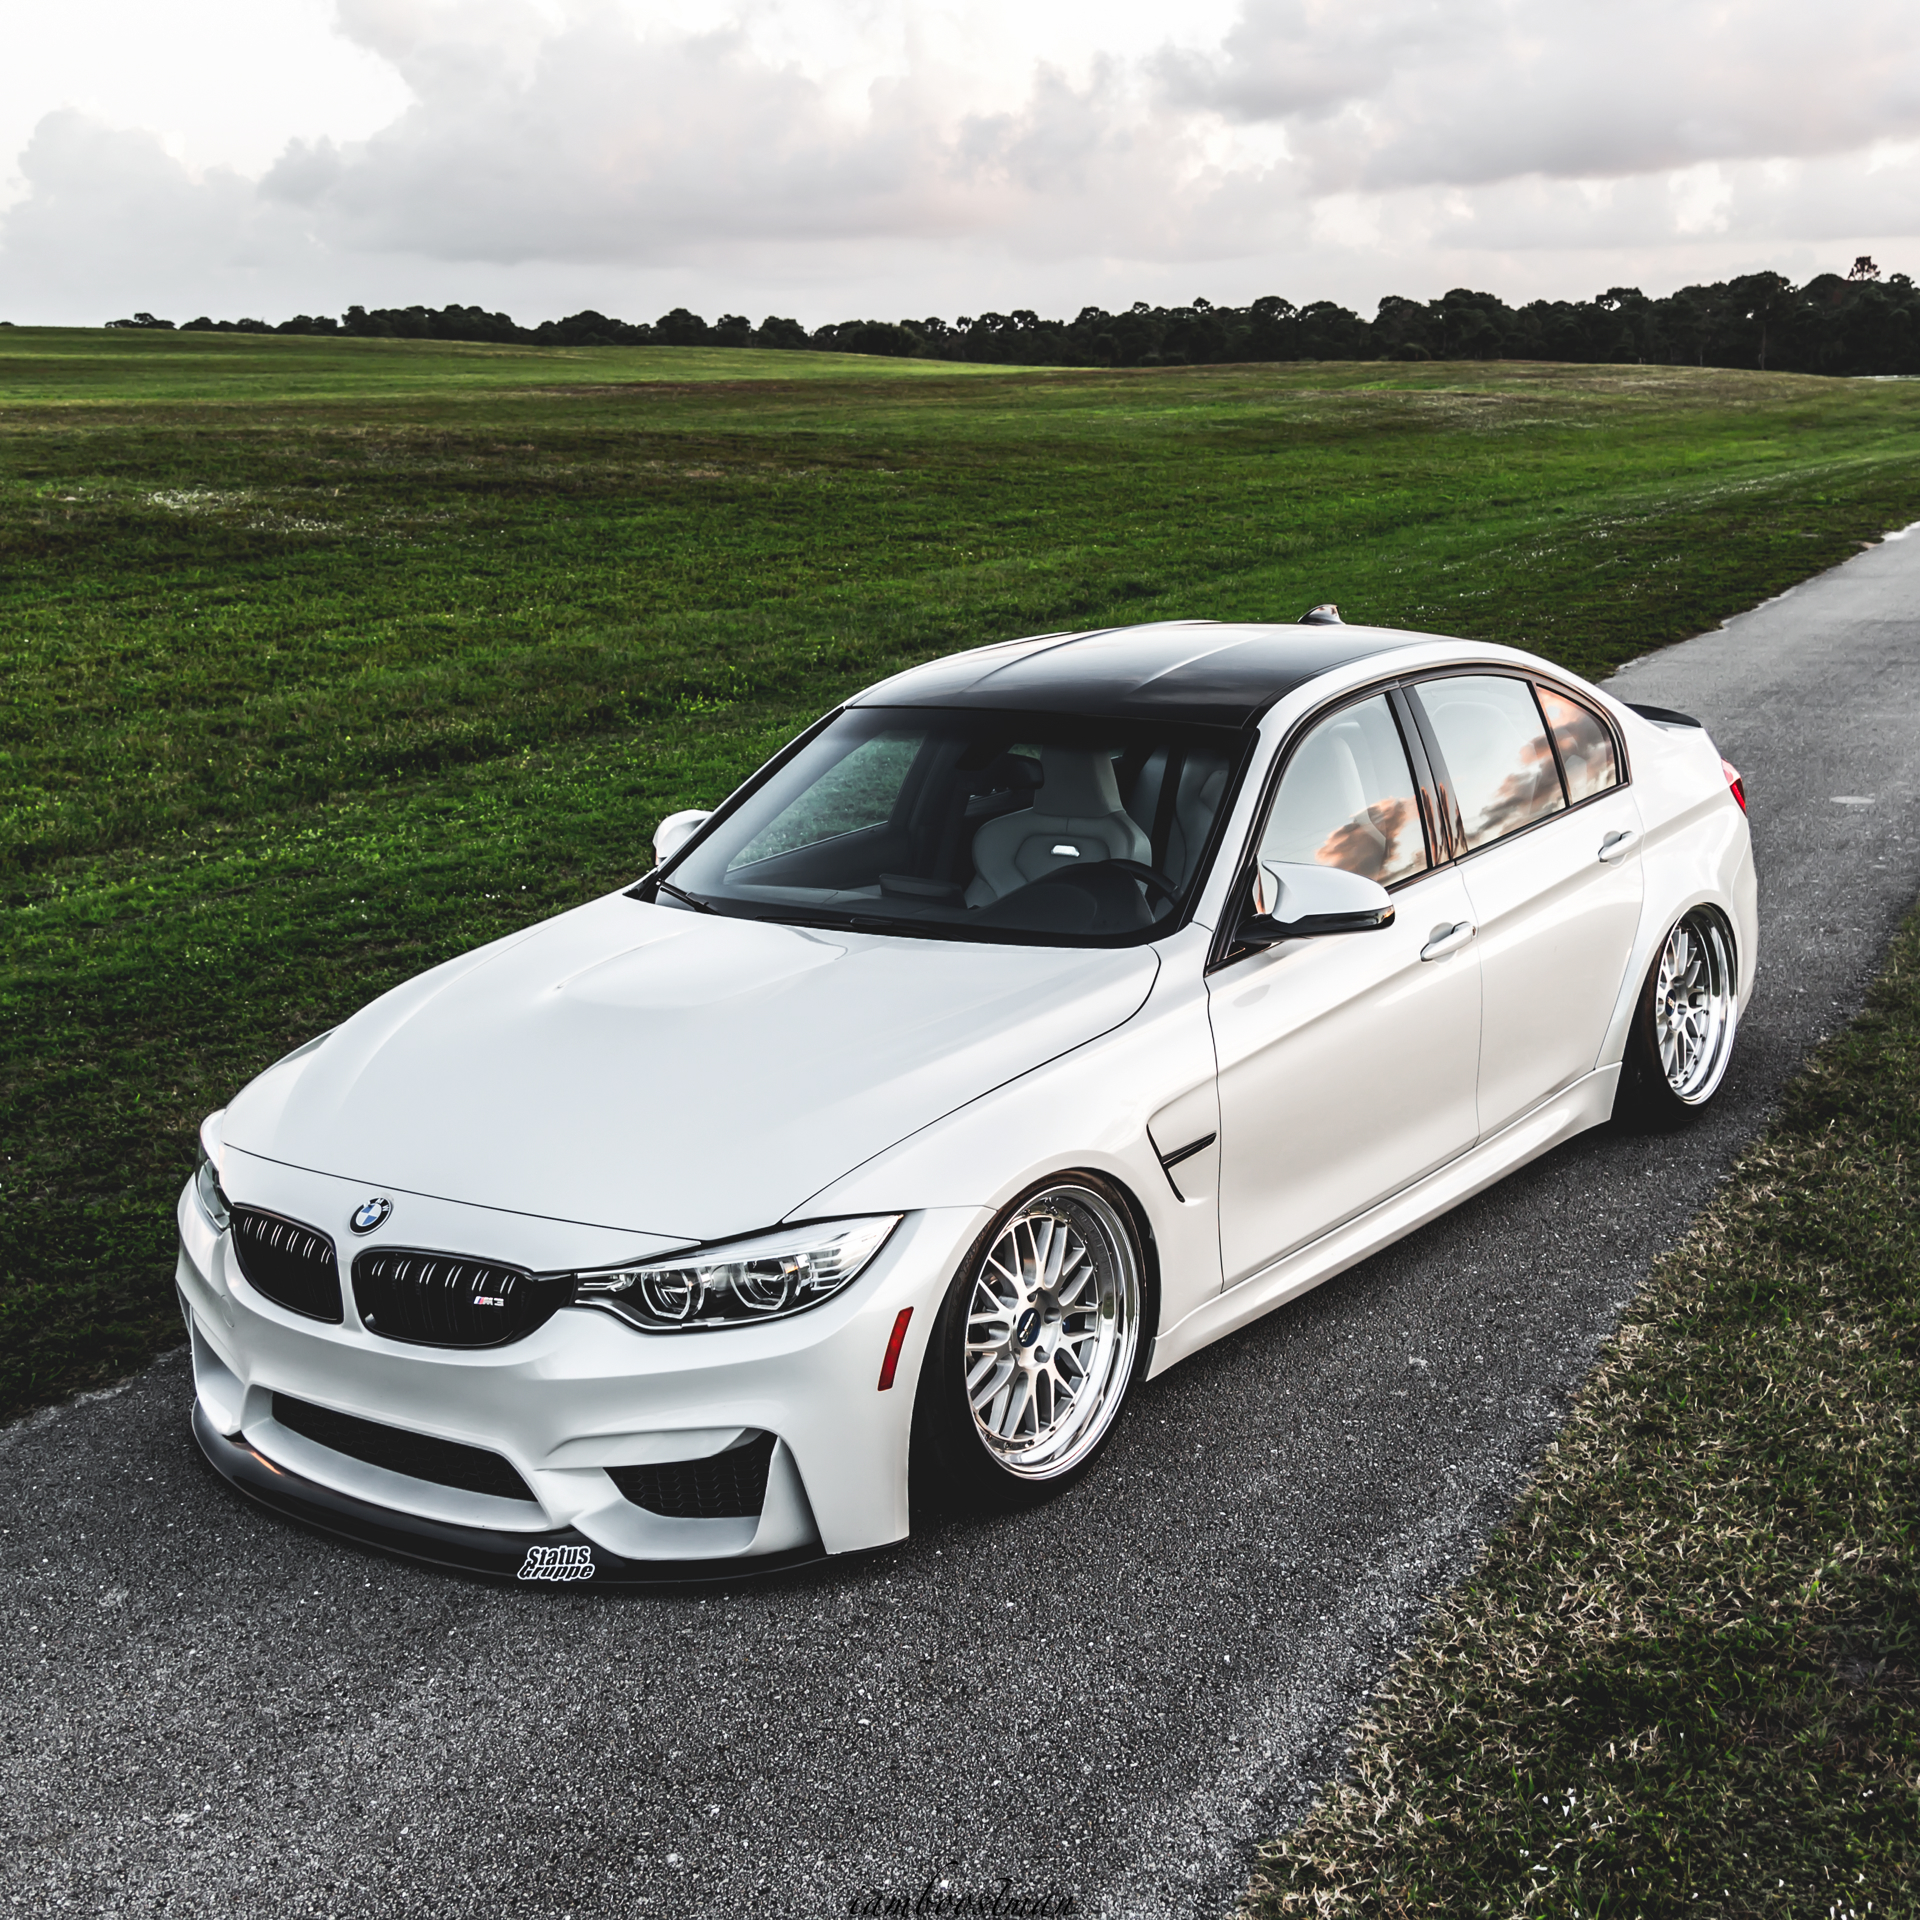 BMW F80 M3 Gets Down And Low